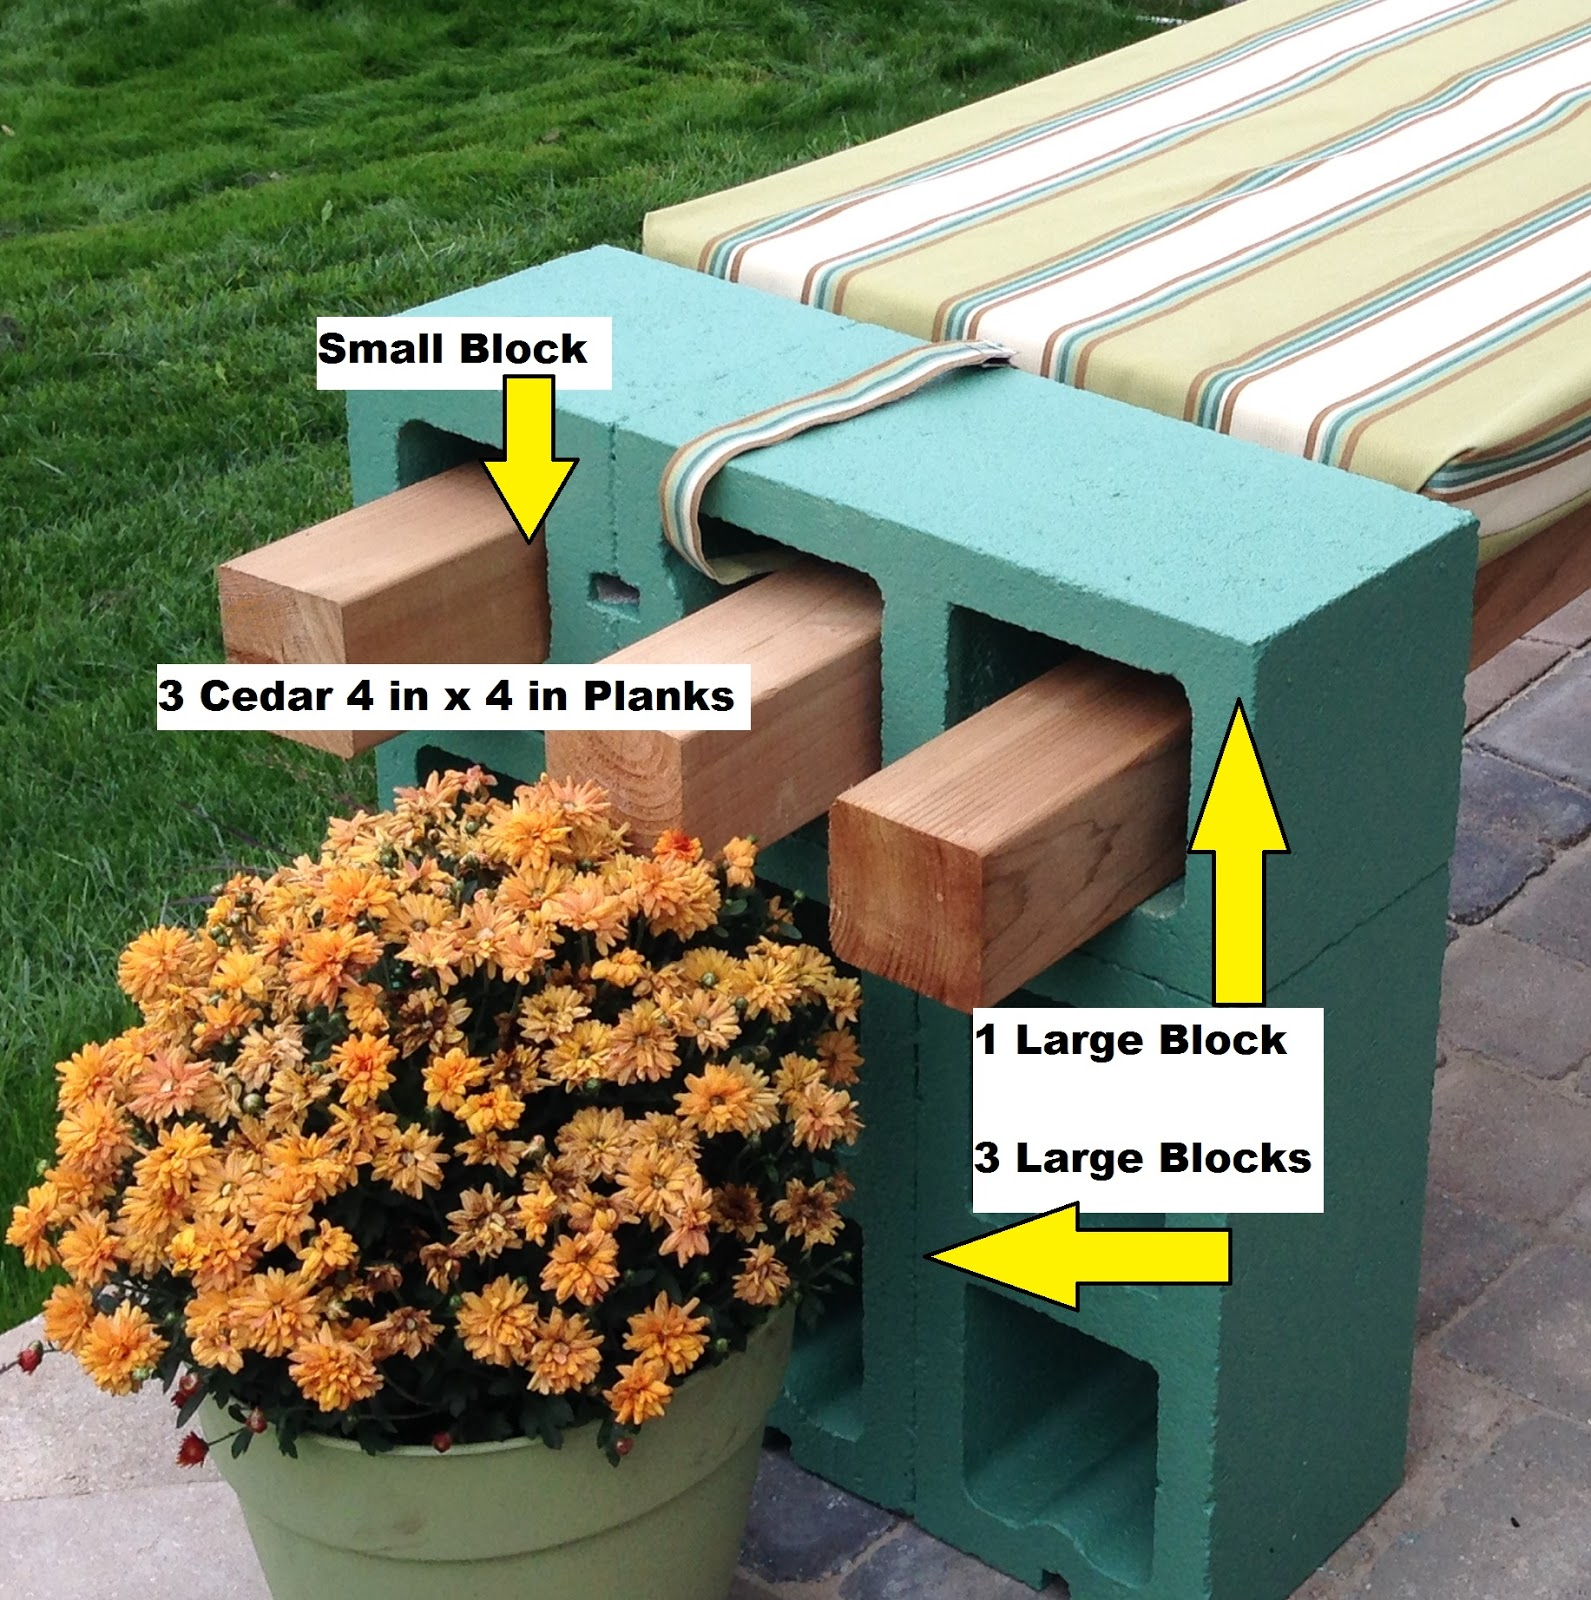 Design Cinder Block Bench cinder block bench do it yourself by kimberly benchspecifics jpg